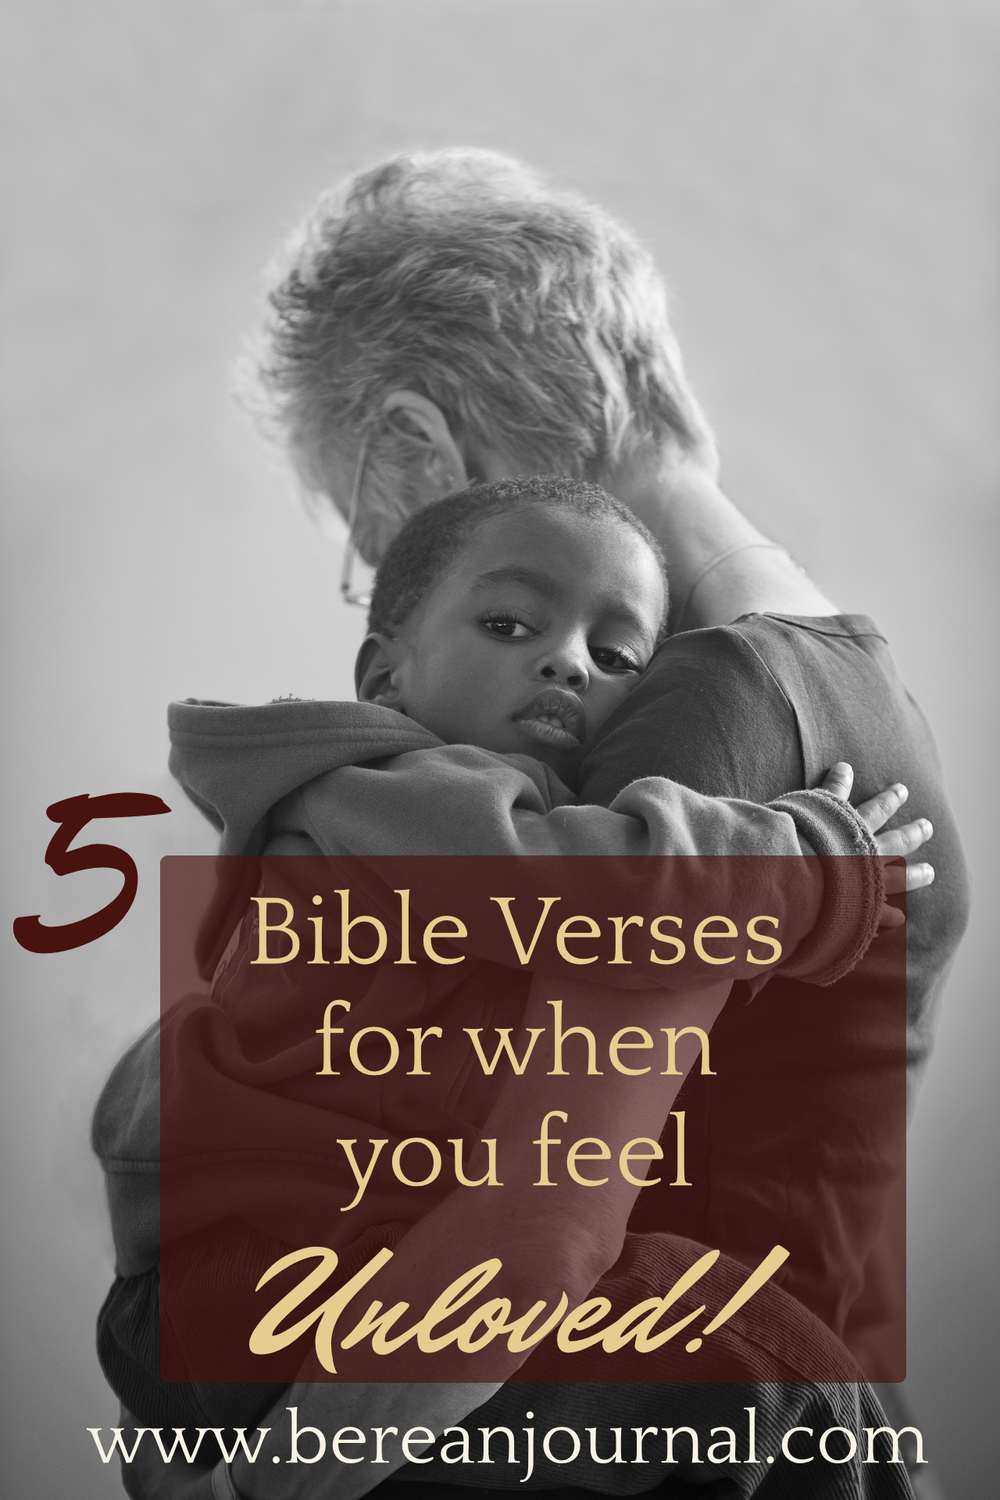 On those days when you are feeling unloved, Jesus Christ wants you to know that isn't the case. Find 5 Bible Verses for when you unloved and unwanted.